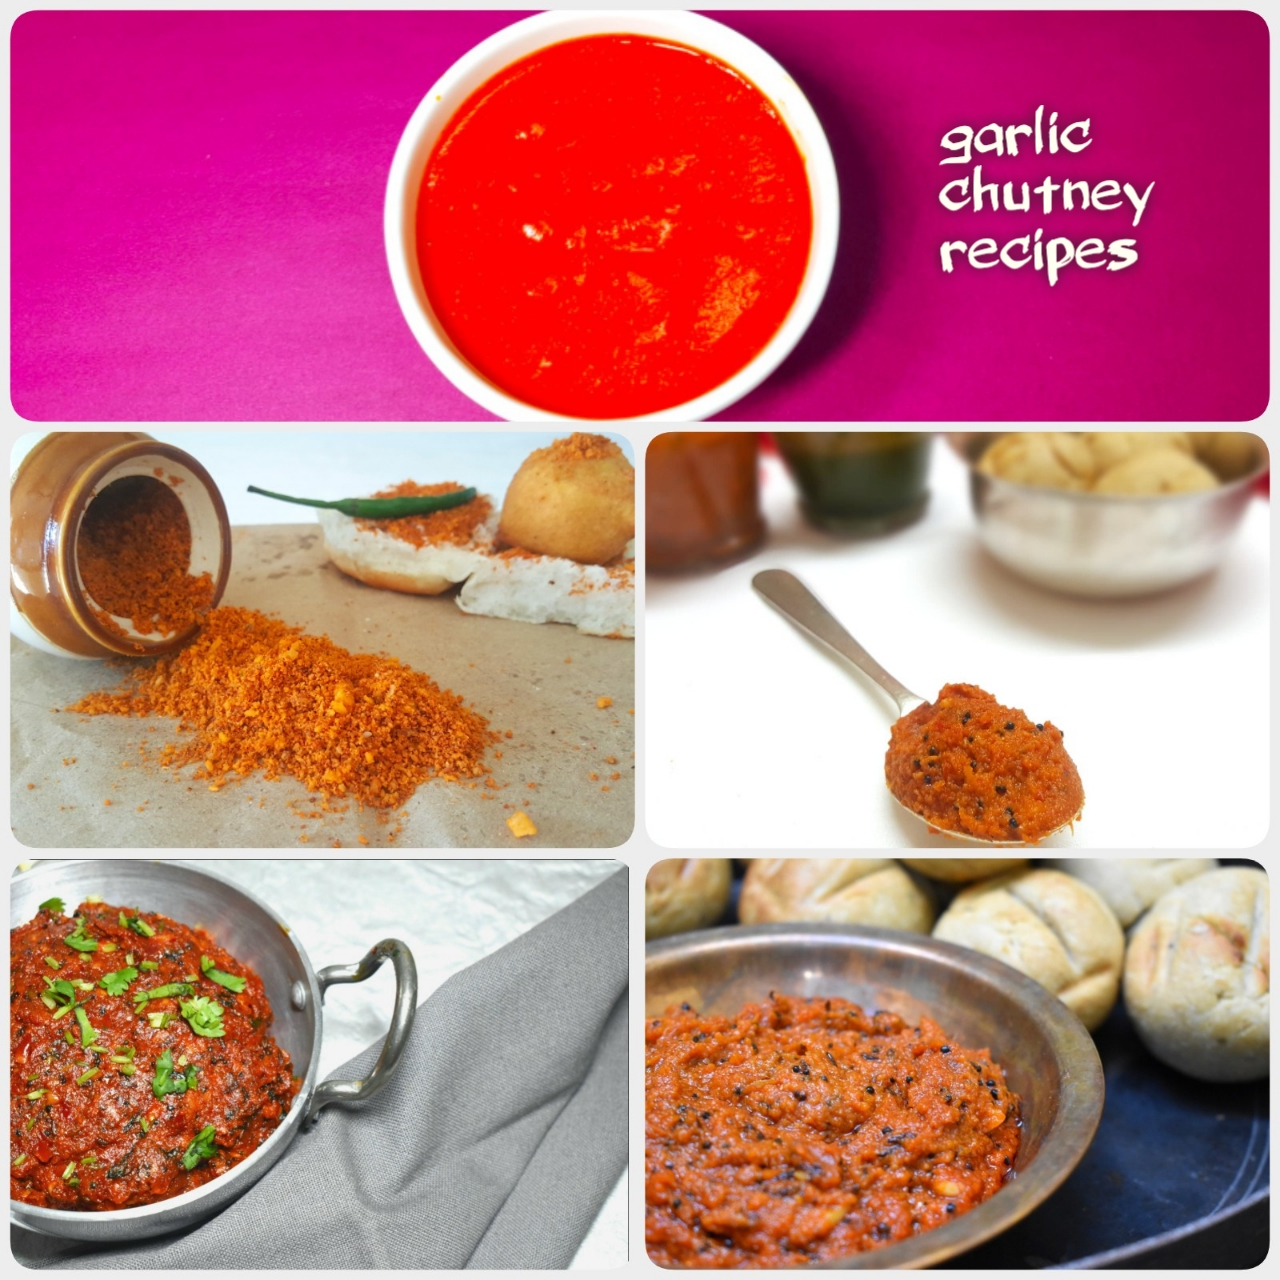 garlic chutney recipes